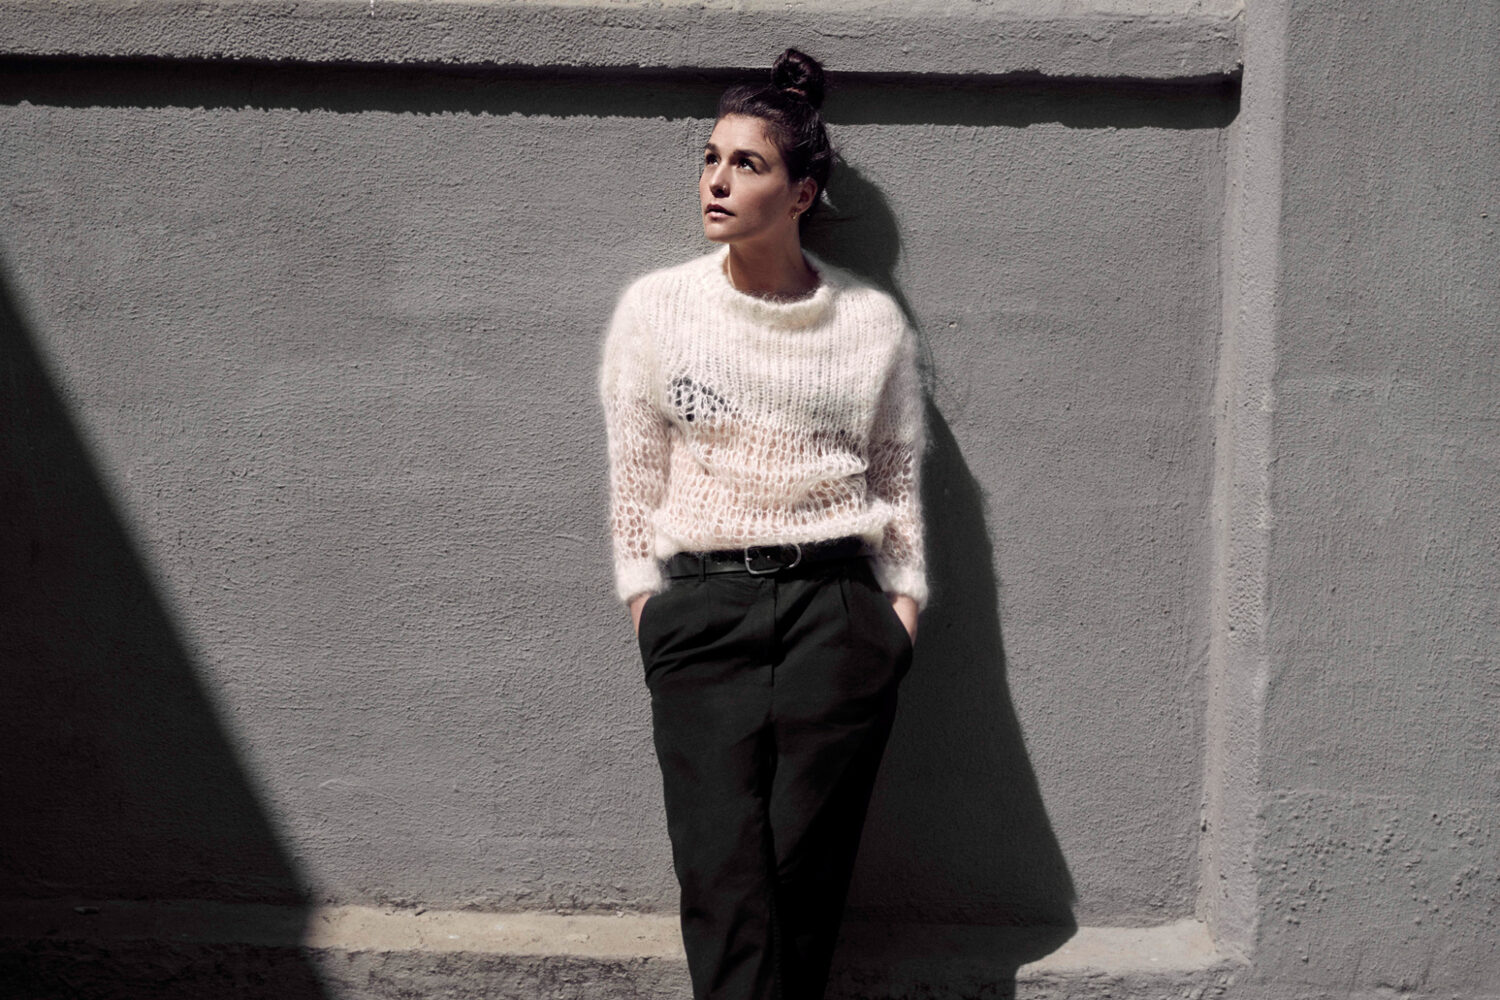 Jessie Ware takes on Labrinth's 'Jealous' for Radio 1